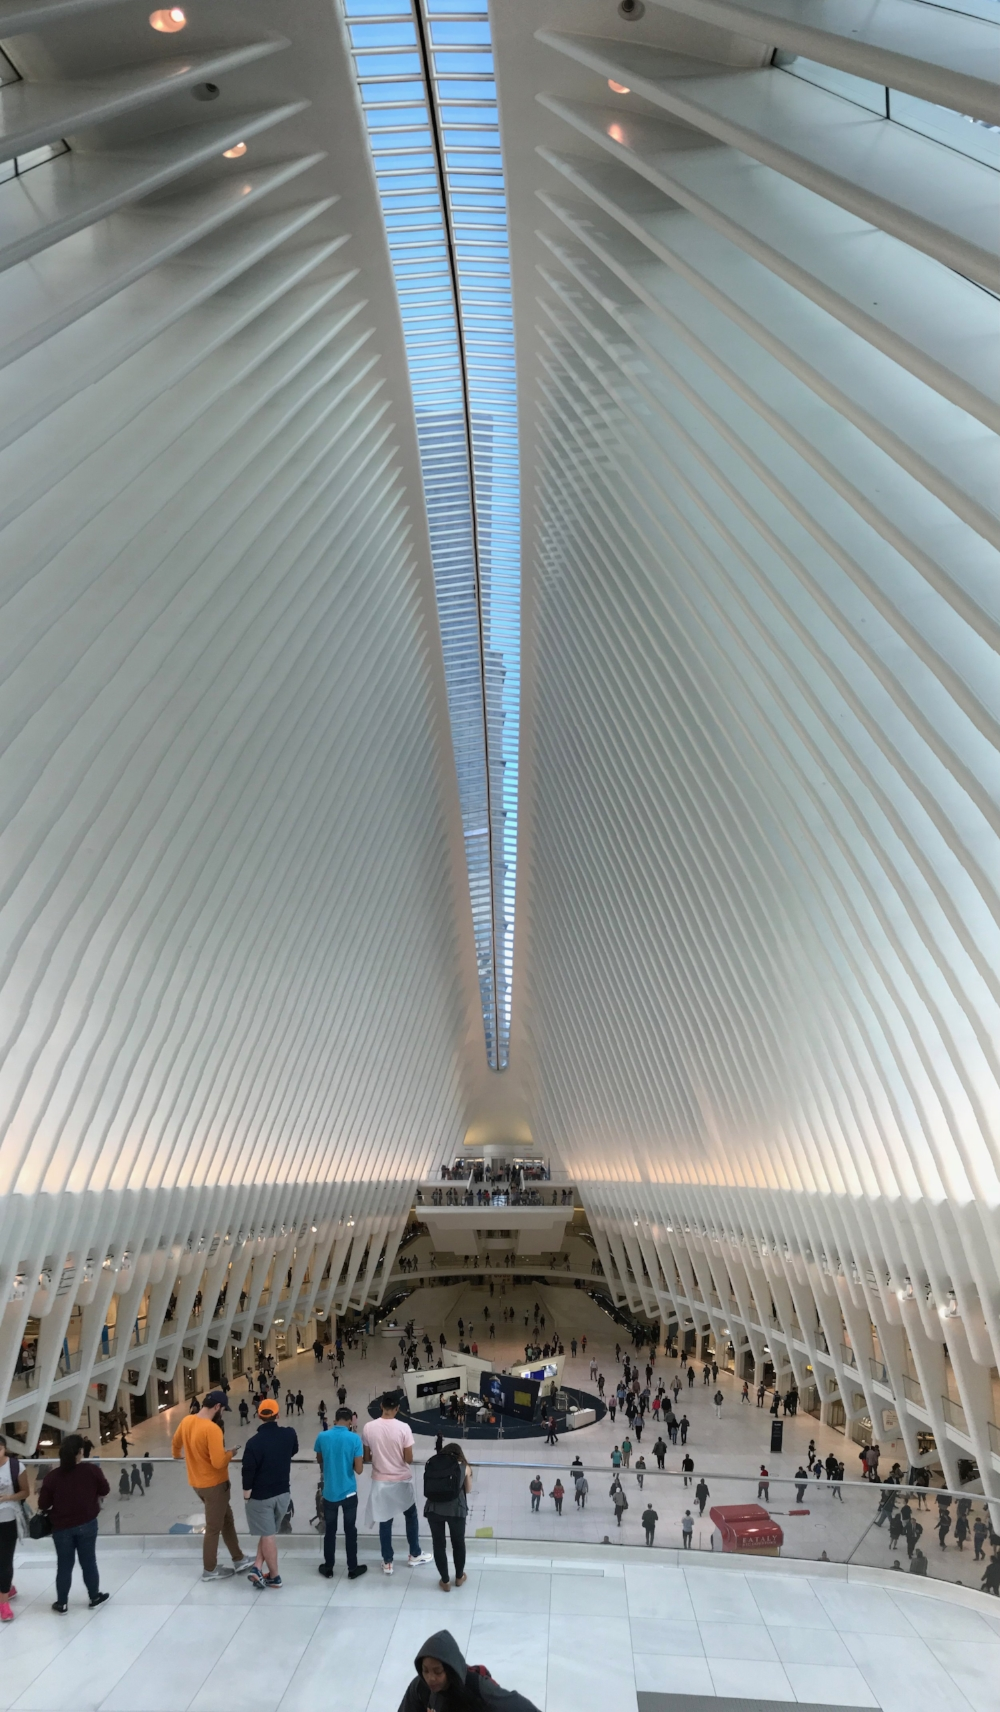 Inside the Oculus. A train station? A mall? A monument?